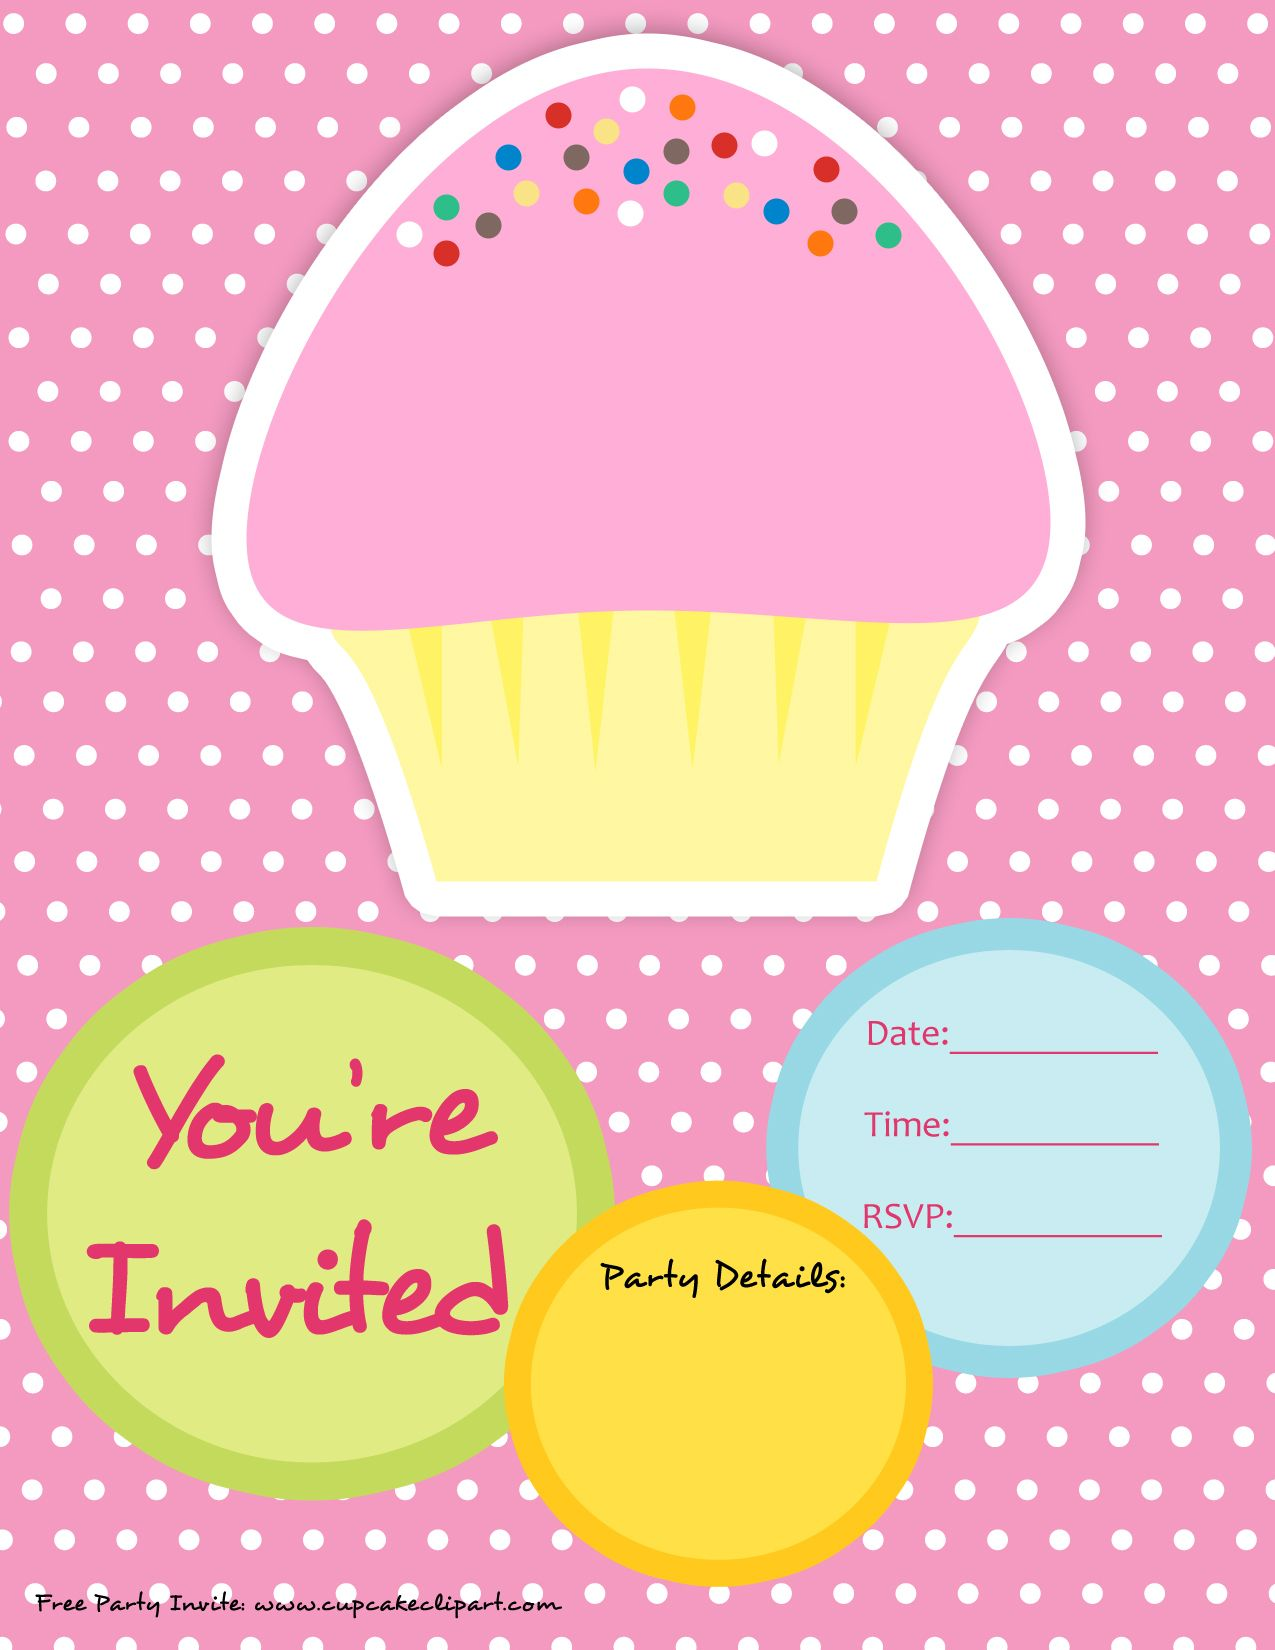 invitations free Published by Cupcake Lover on December